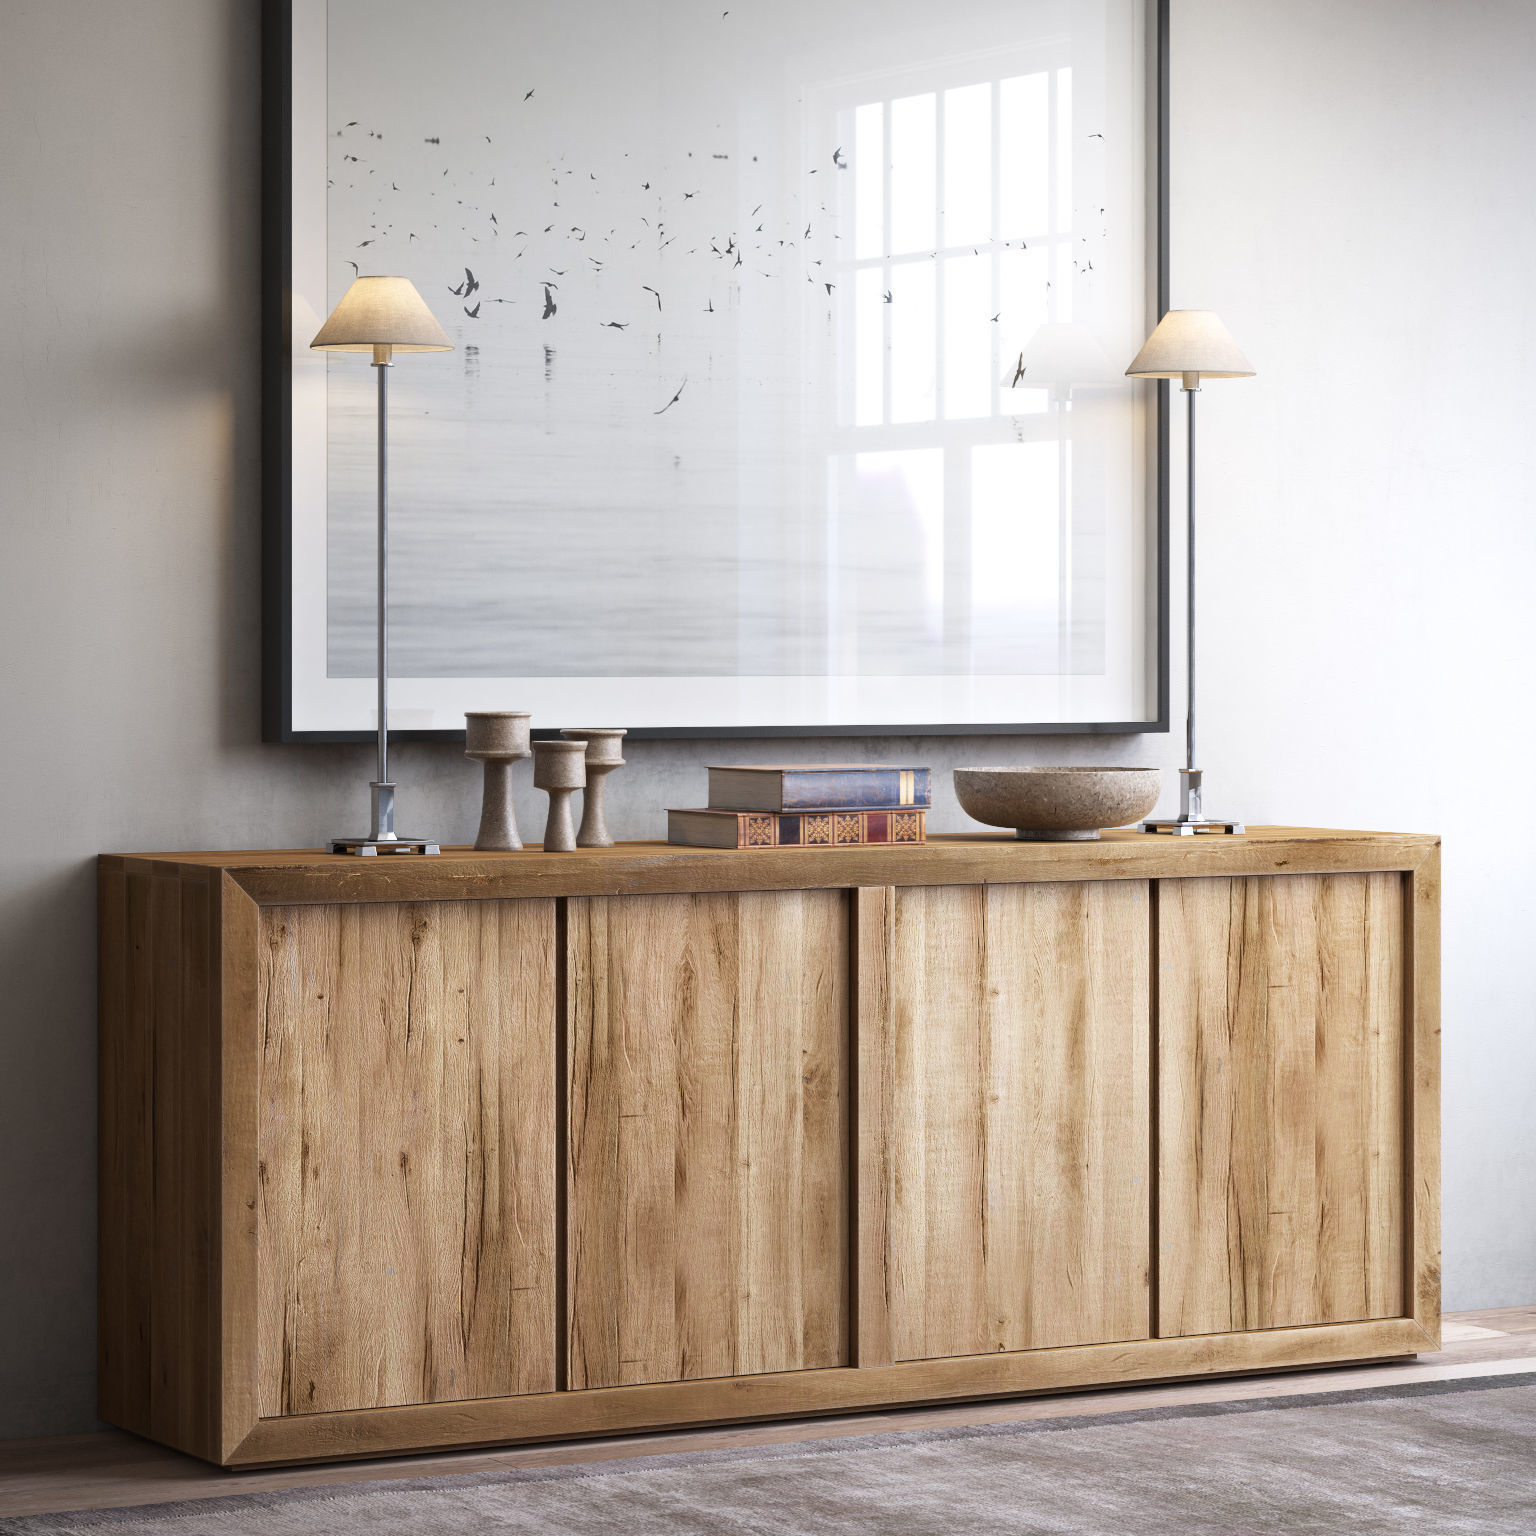 Fashionable Reclaimed Sideboards With Metal Panel With Regard To Reclaimed Russian Oak Panel 4 Door Wood Sideboard 3D Model Max Obj (Gallery 7 of 20)